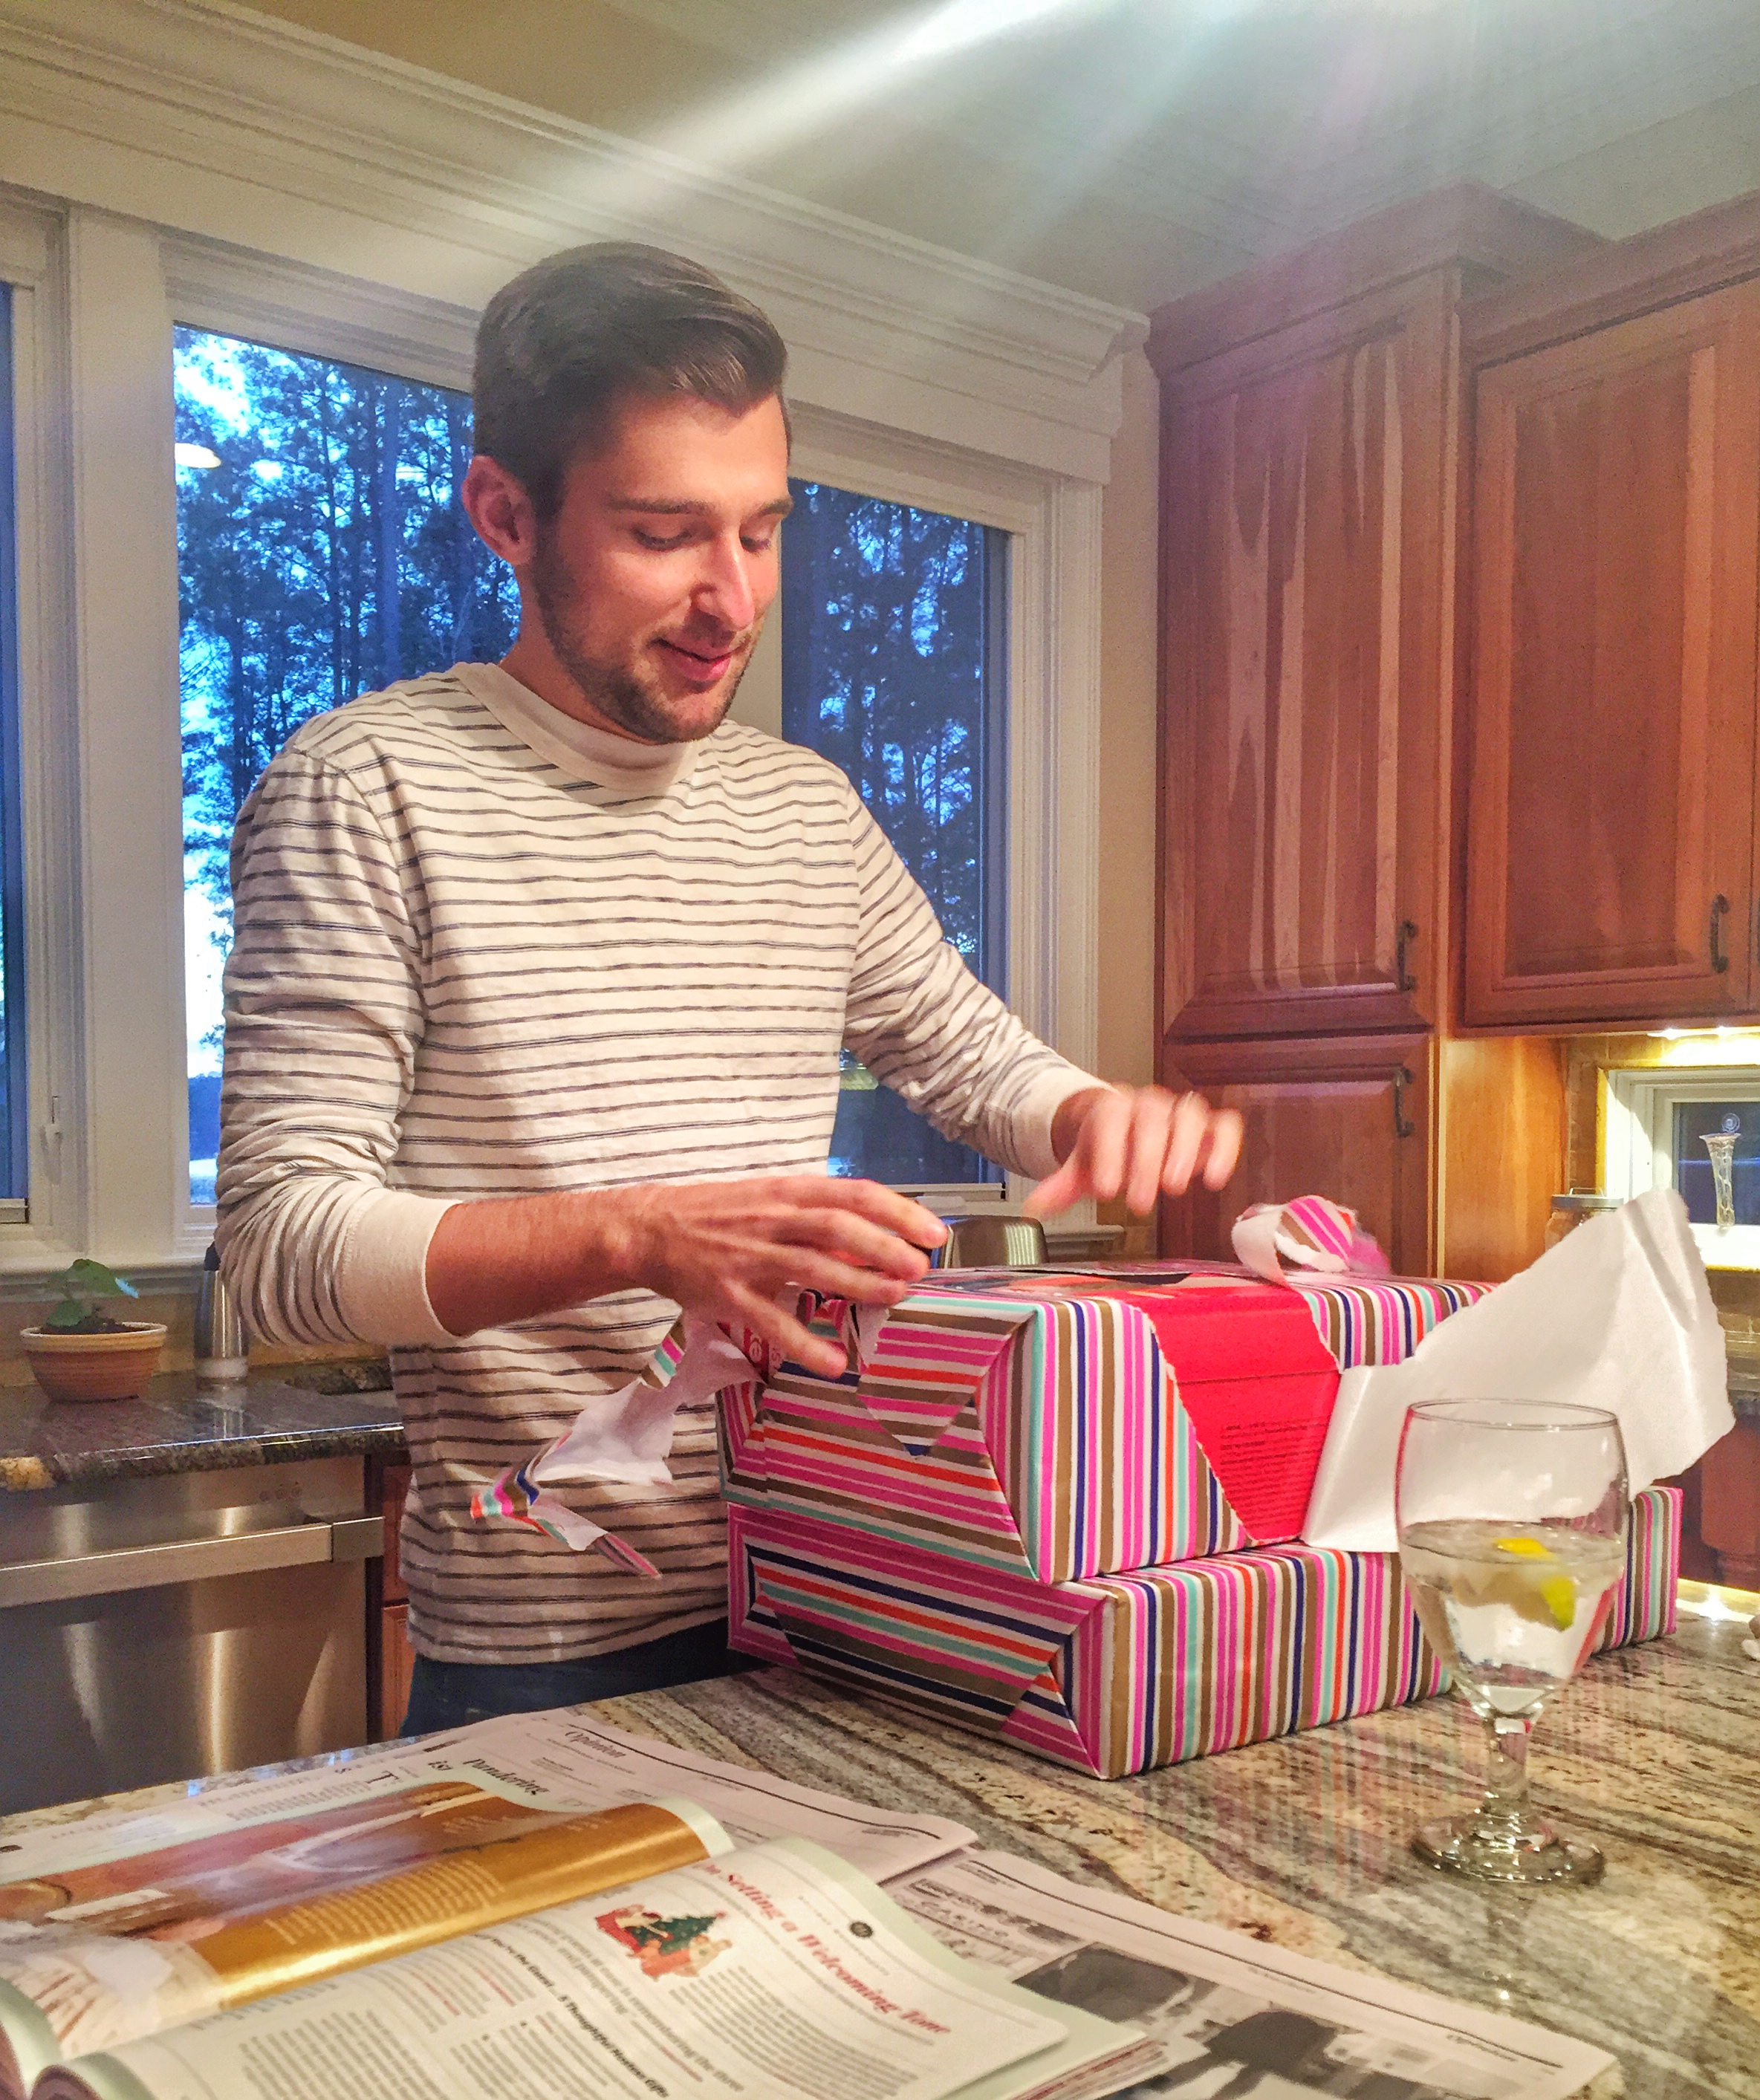 Opening birthday presents; Raleigh, NC